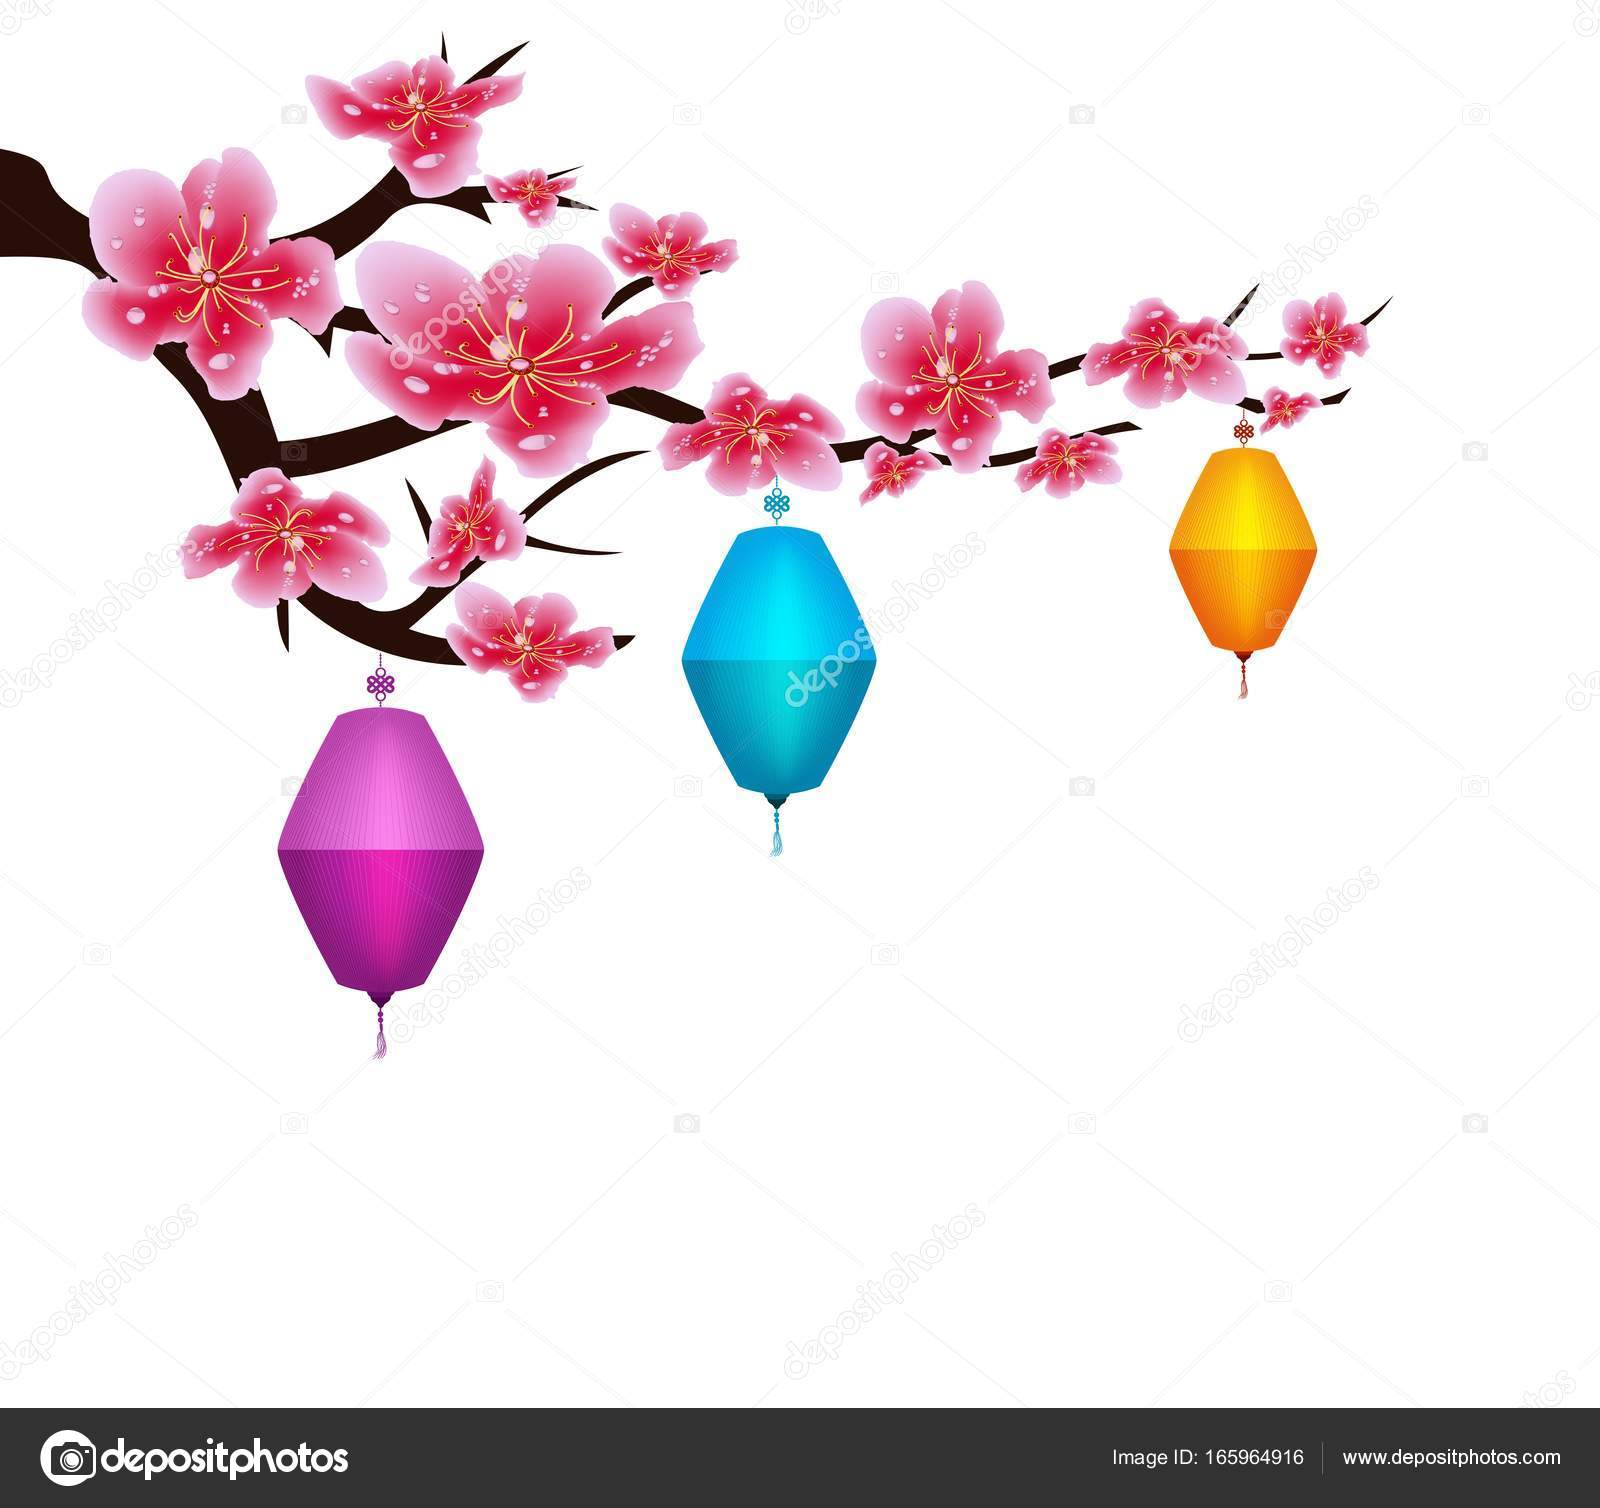 sakura flowers background cherry blossom lantern isolated white background chinese new year stock